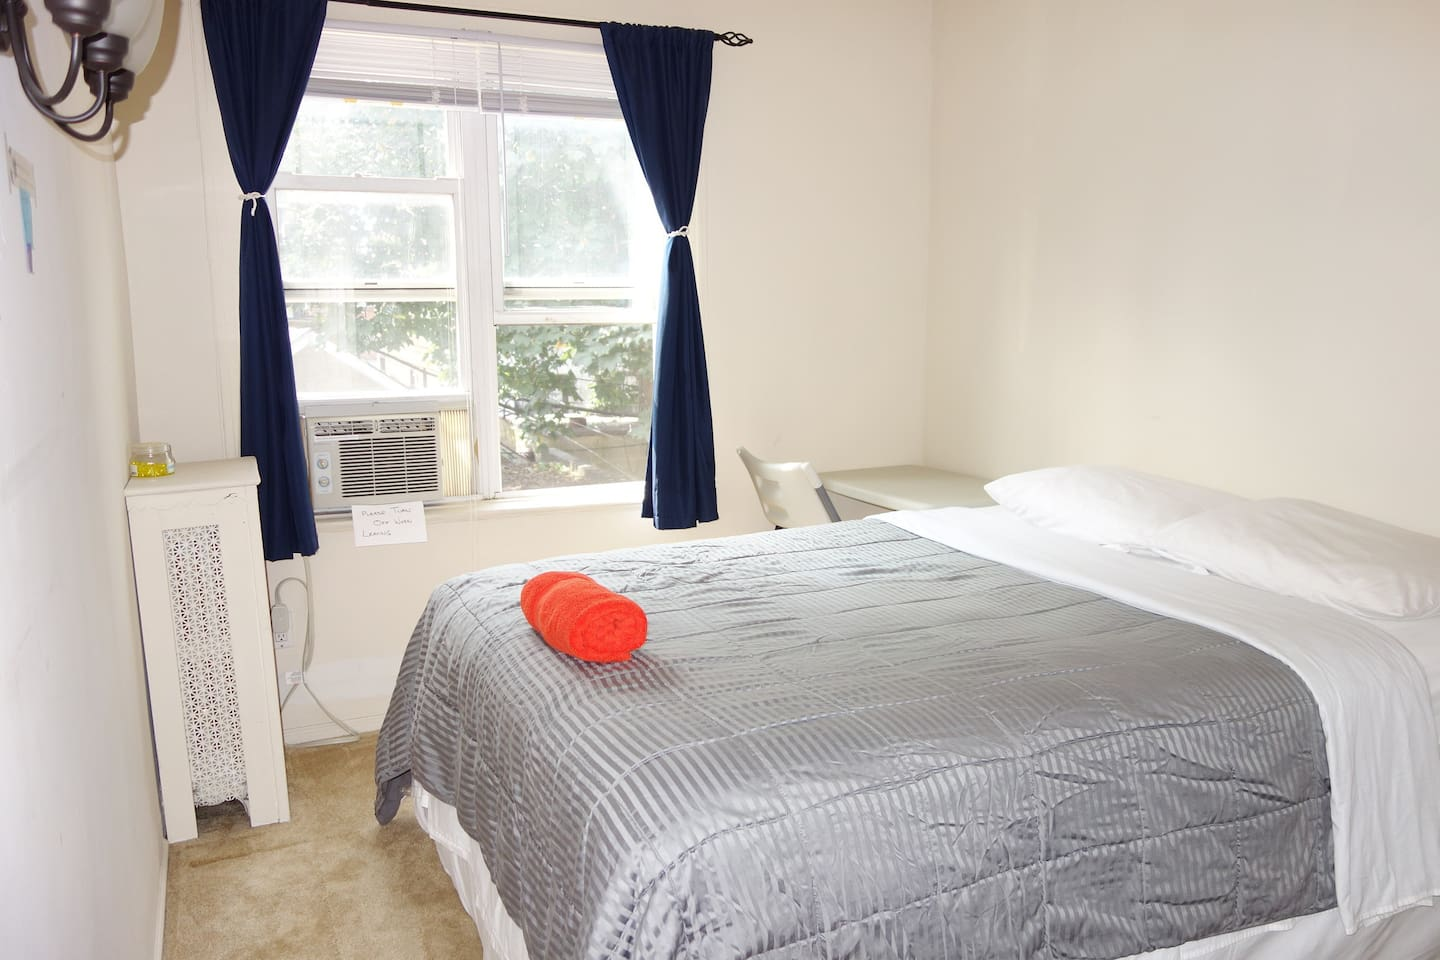 CLEAN AND SUNNY ROOM WITH COMFORTABLE QUEEN BED